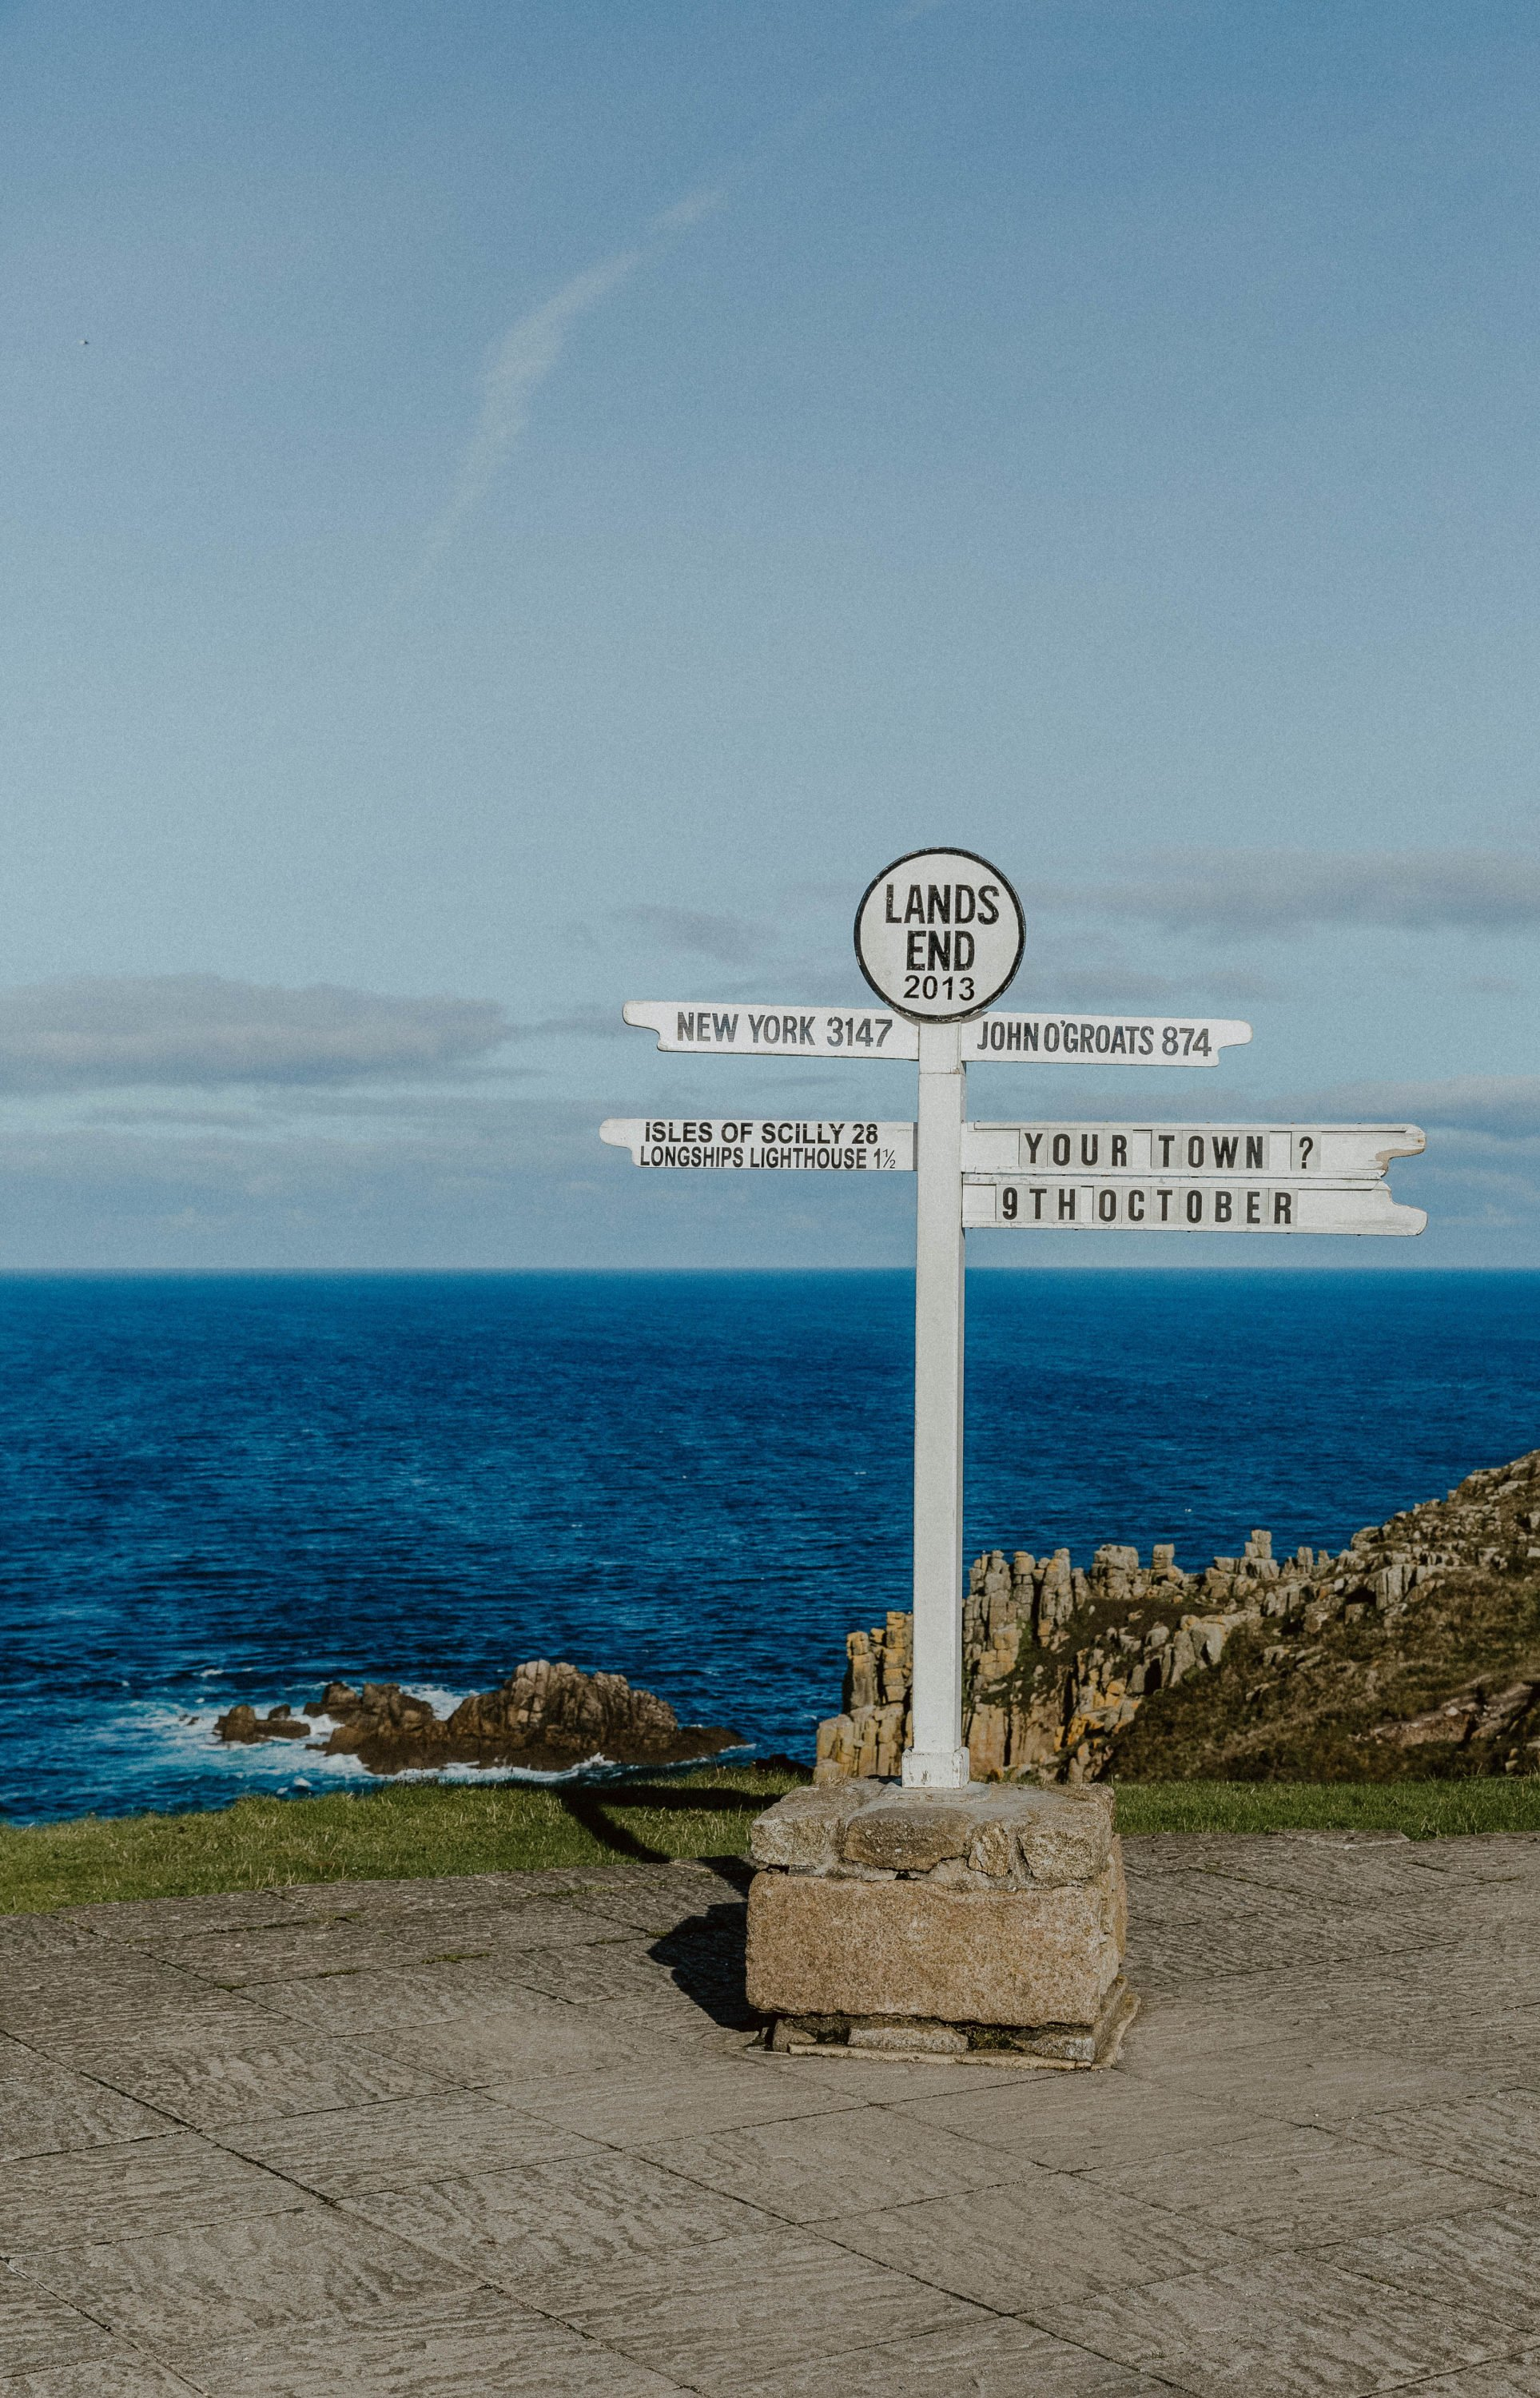 Lands End signpost